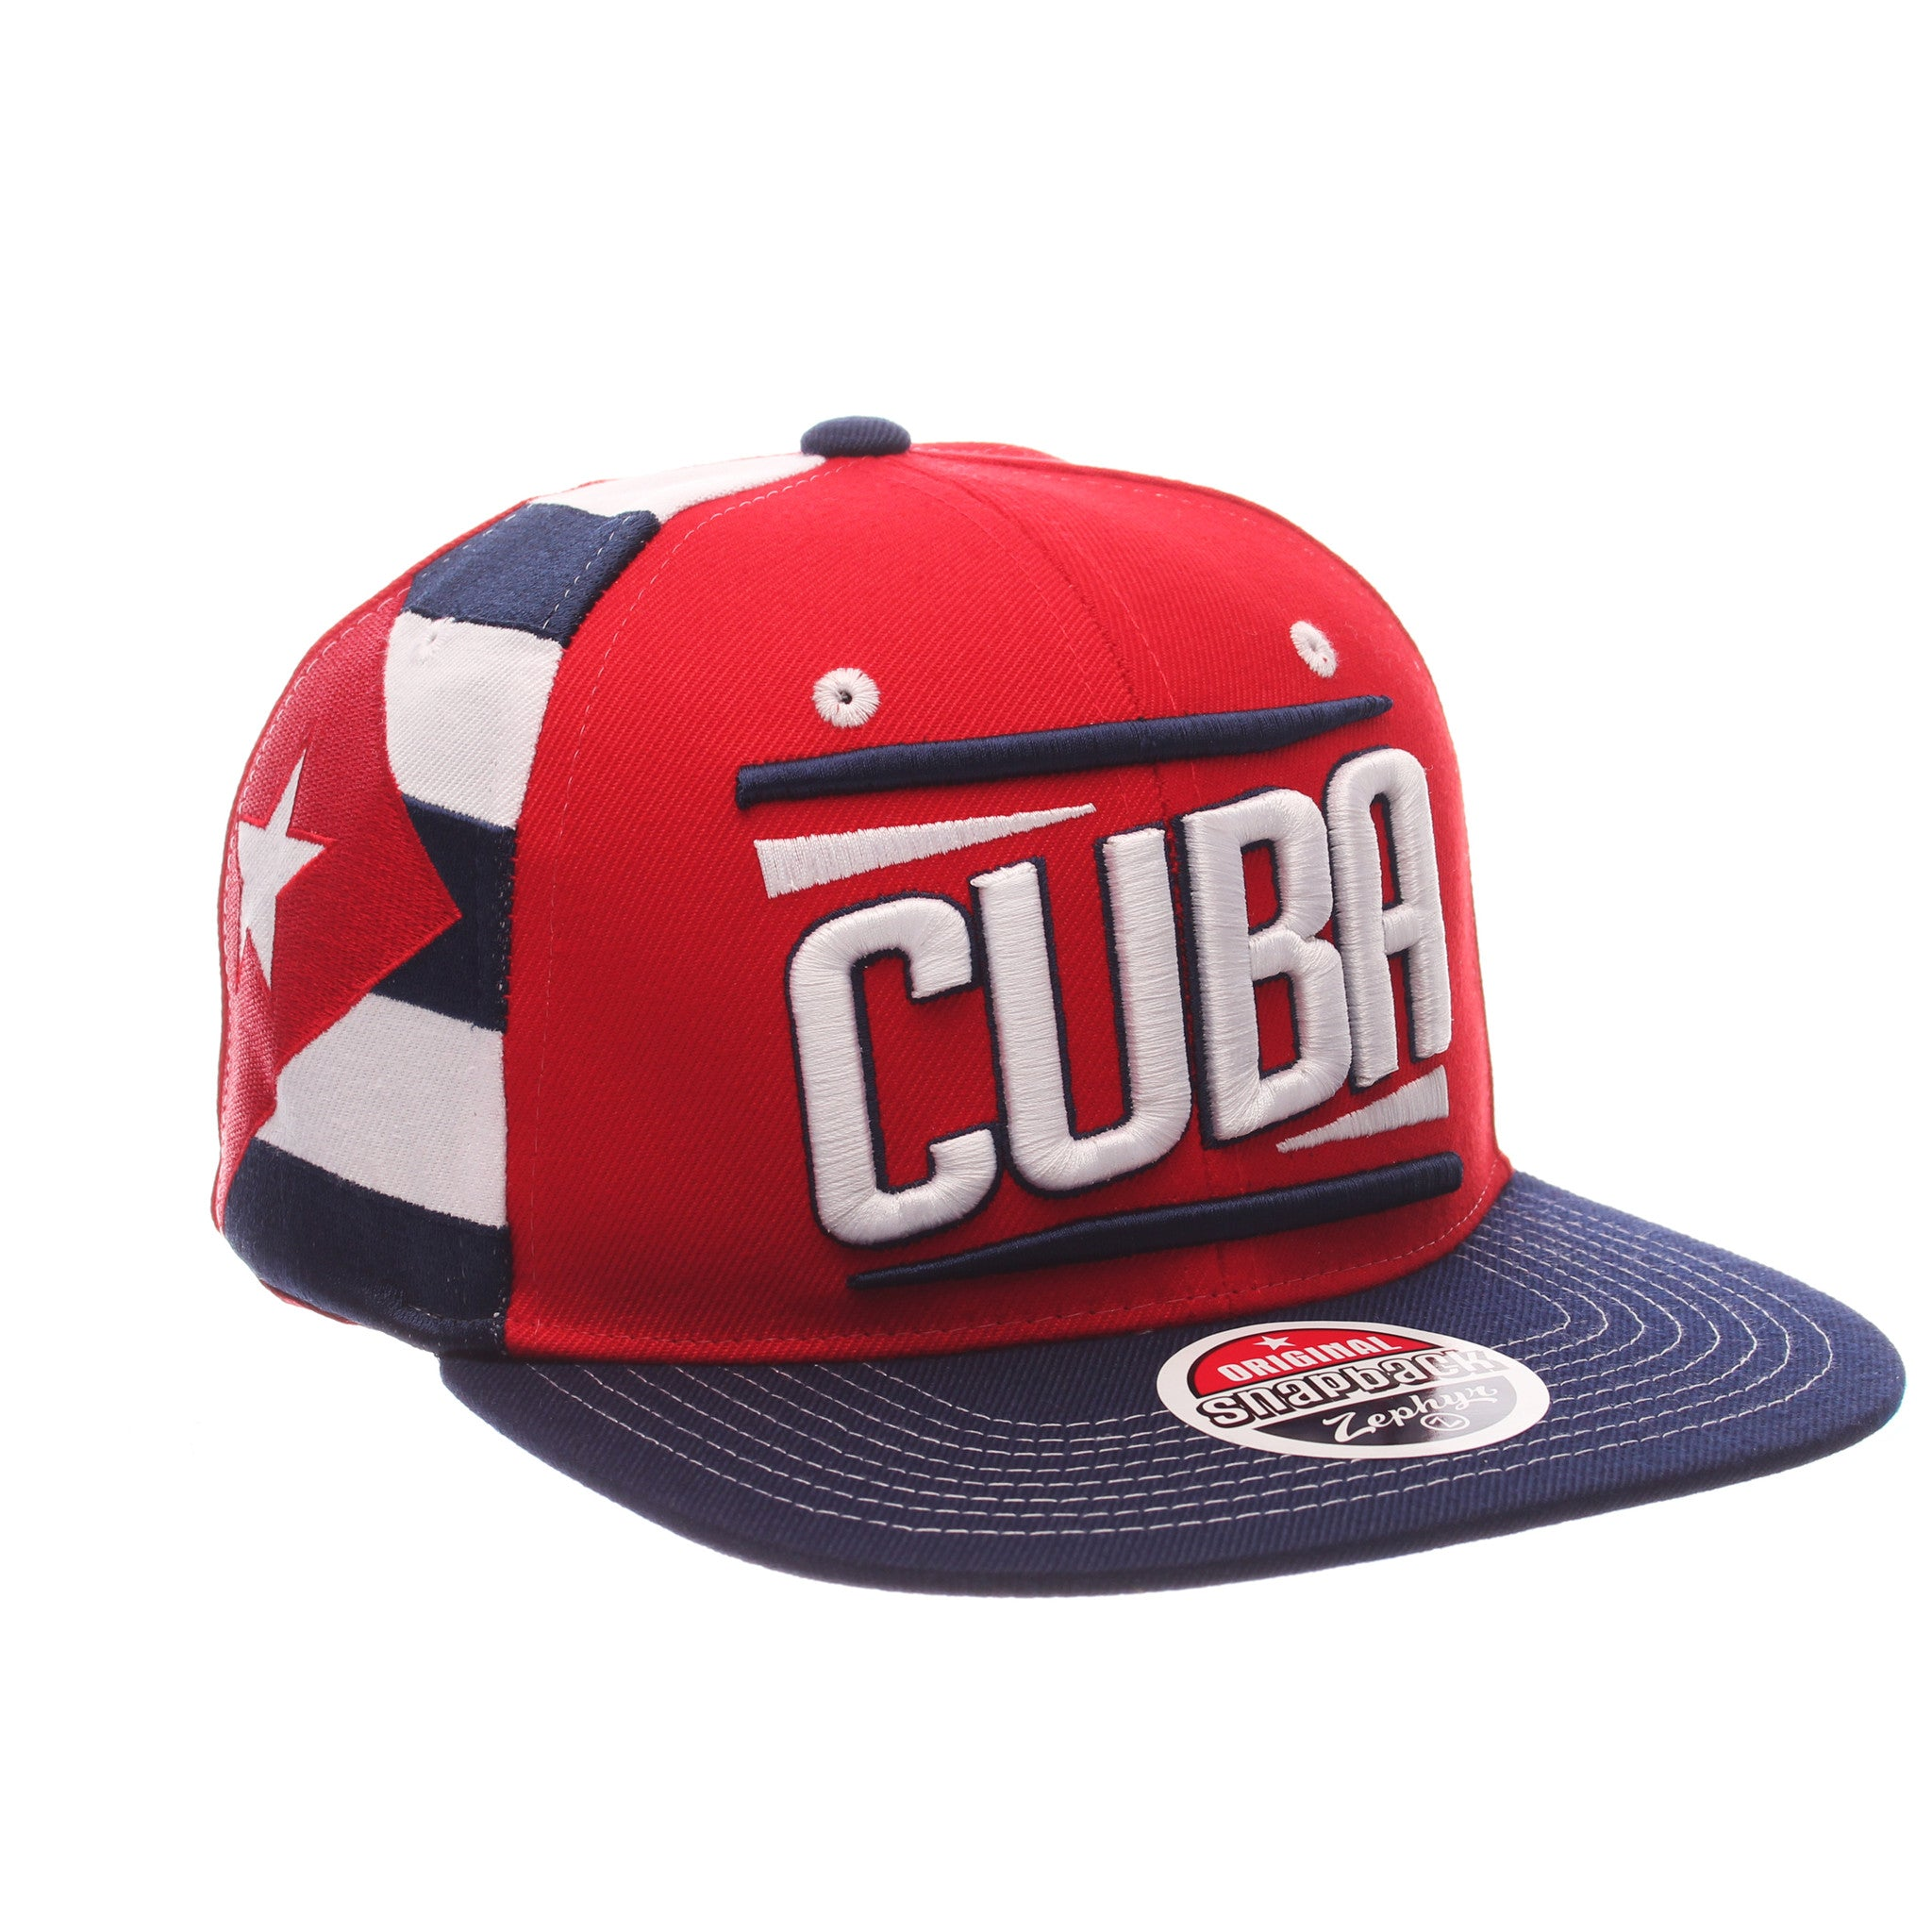 COUNTRY Victory 32/5 (High) (CUBA W/LINES) Varied Colors Varied Panels Adjustable hats by Zephyr